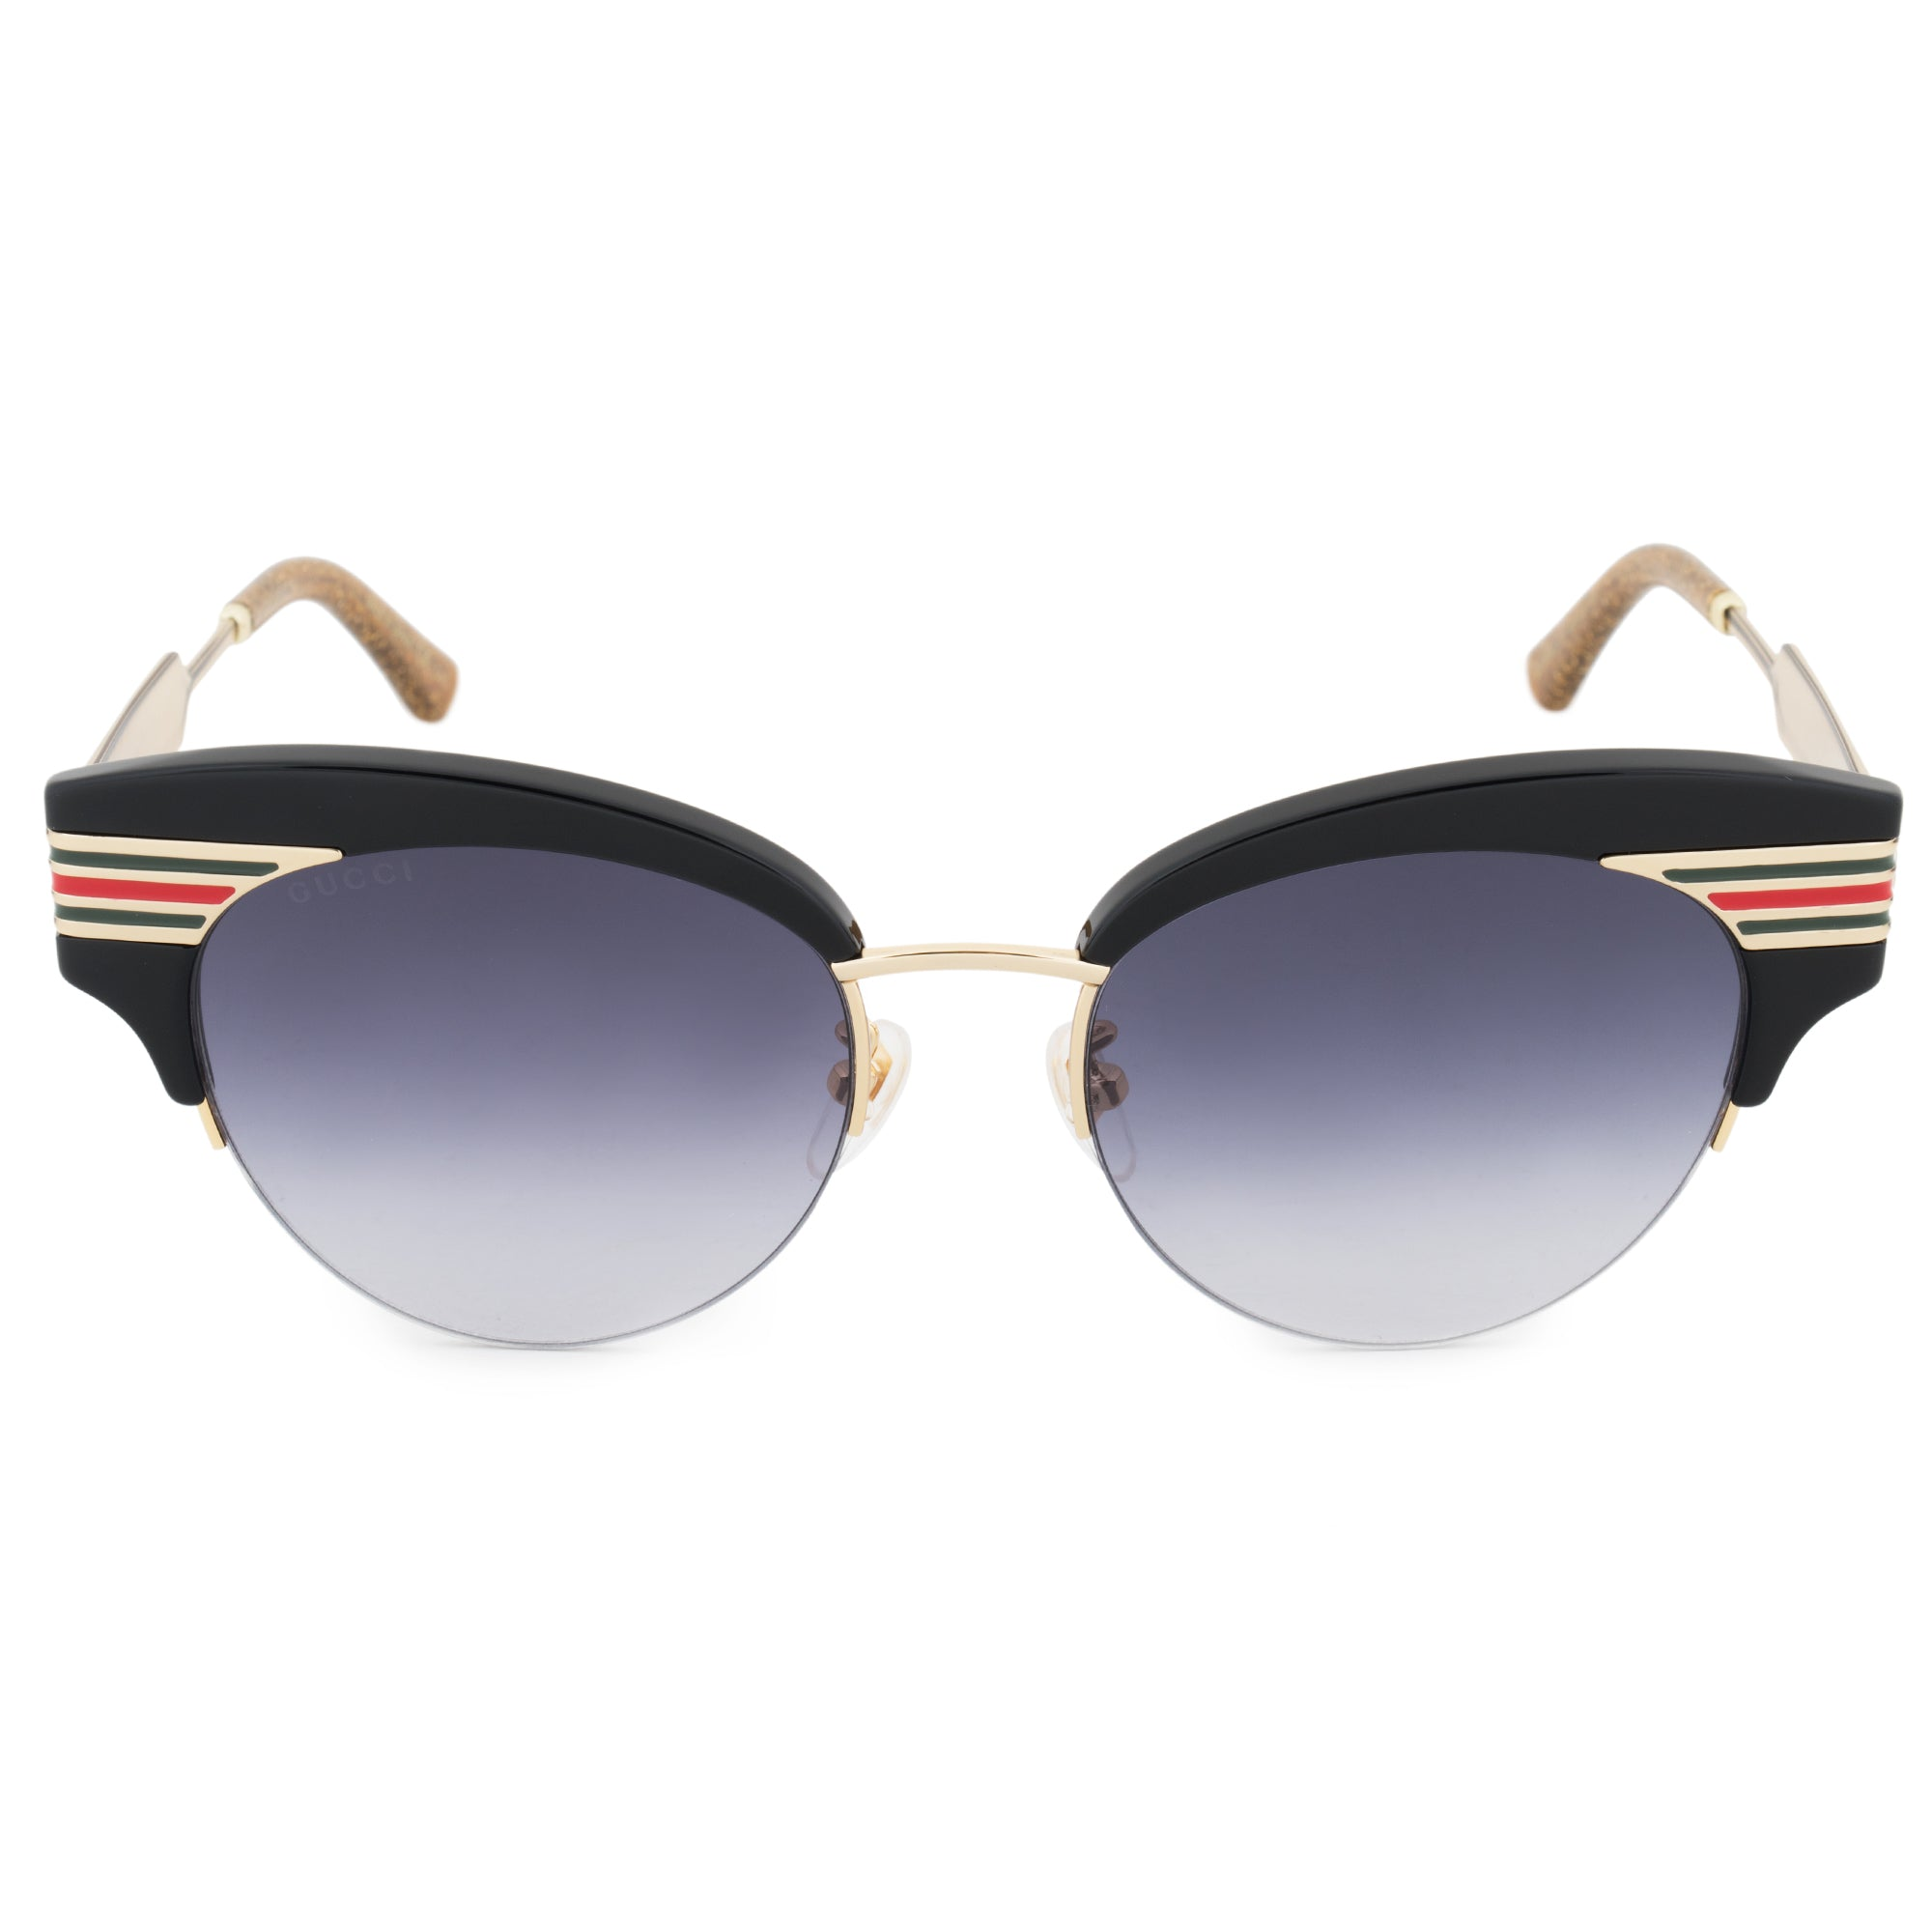 Gucci Gucci Cat Eye Sunglasses GG0283S 001 53